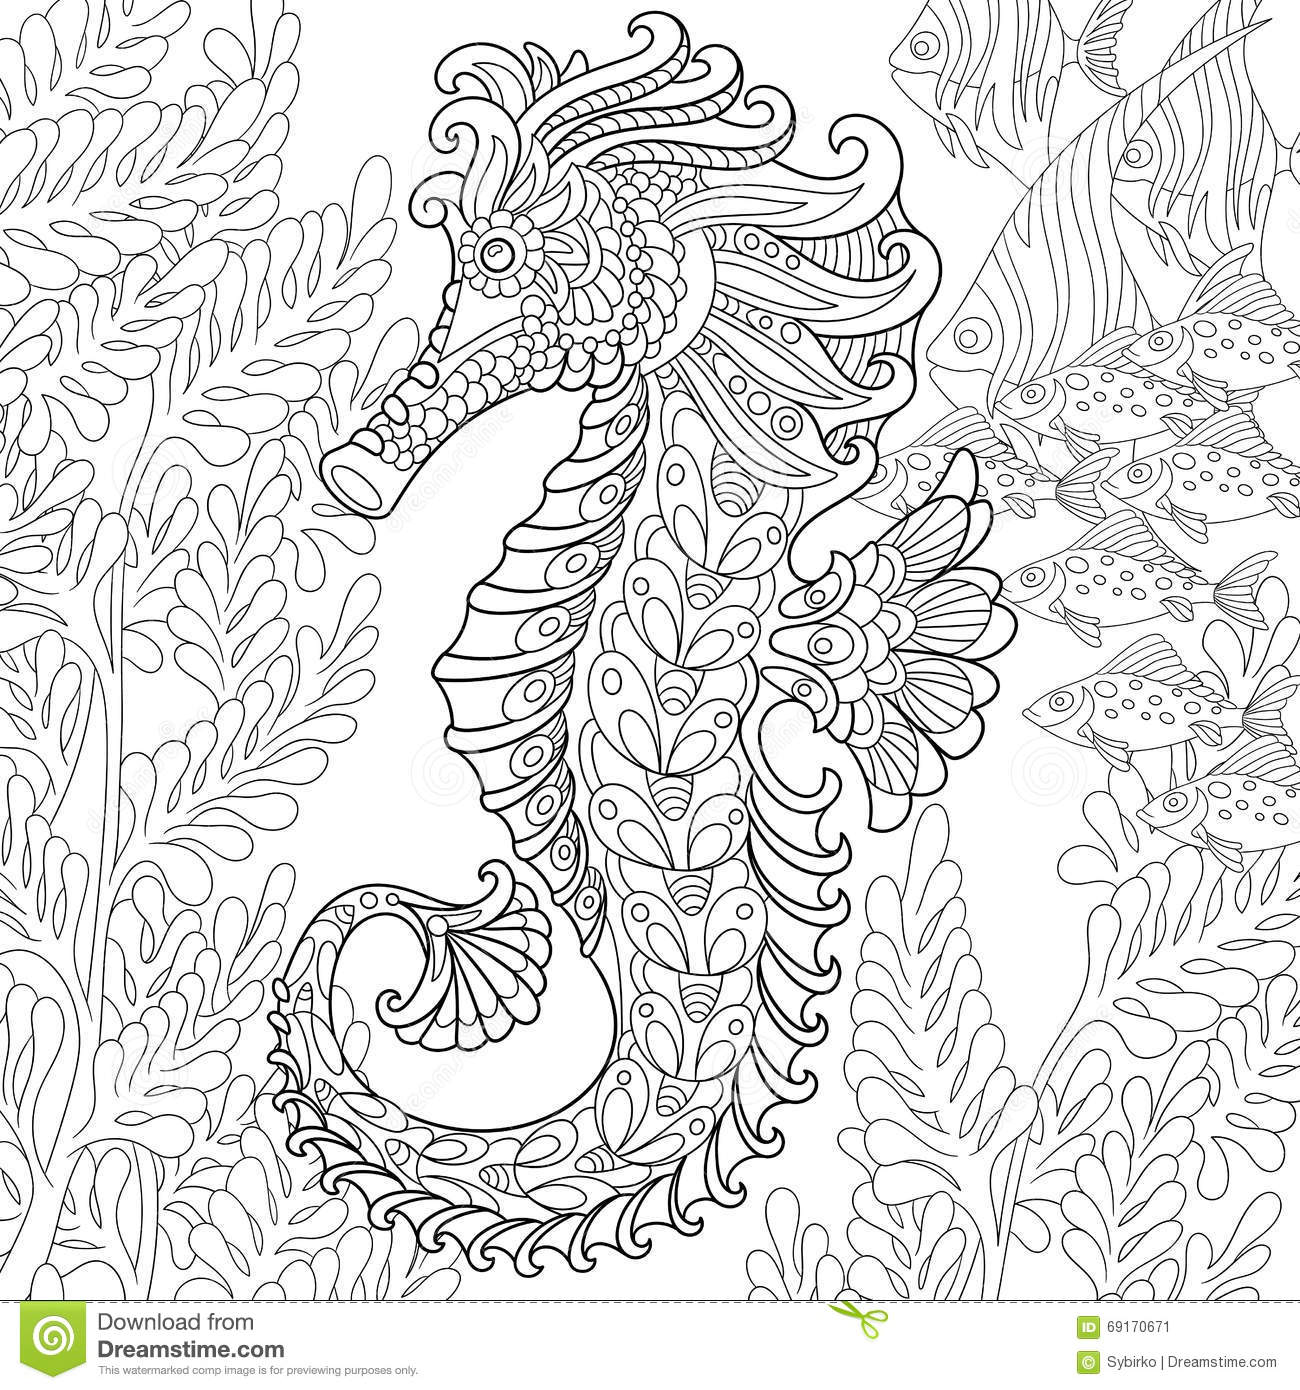 Tropical Fish Coloring Pages For Adults